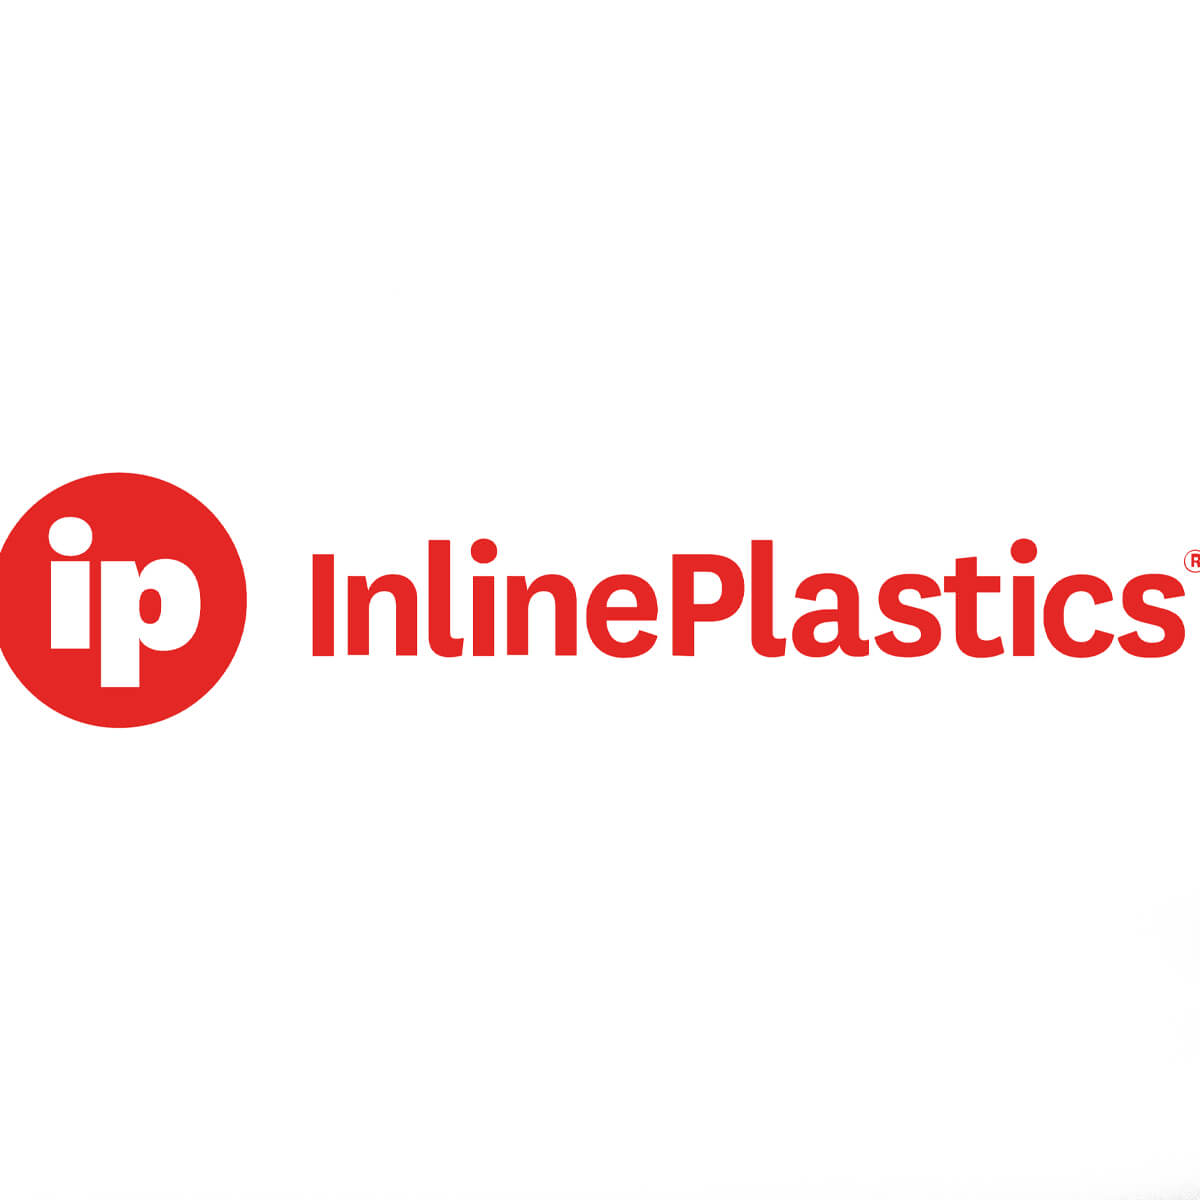 incline-plastics title